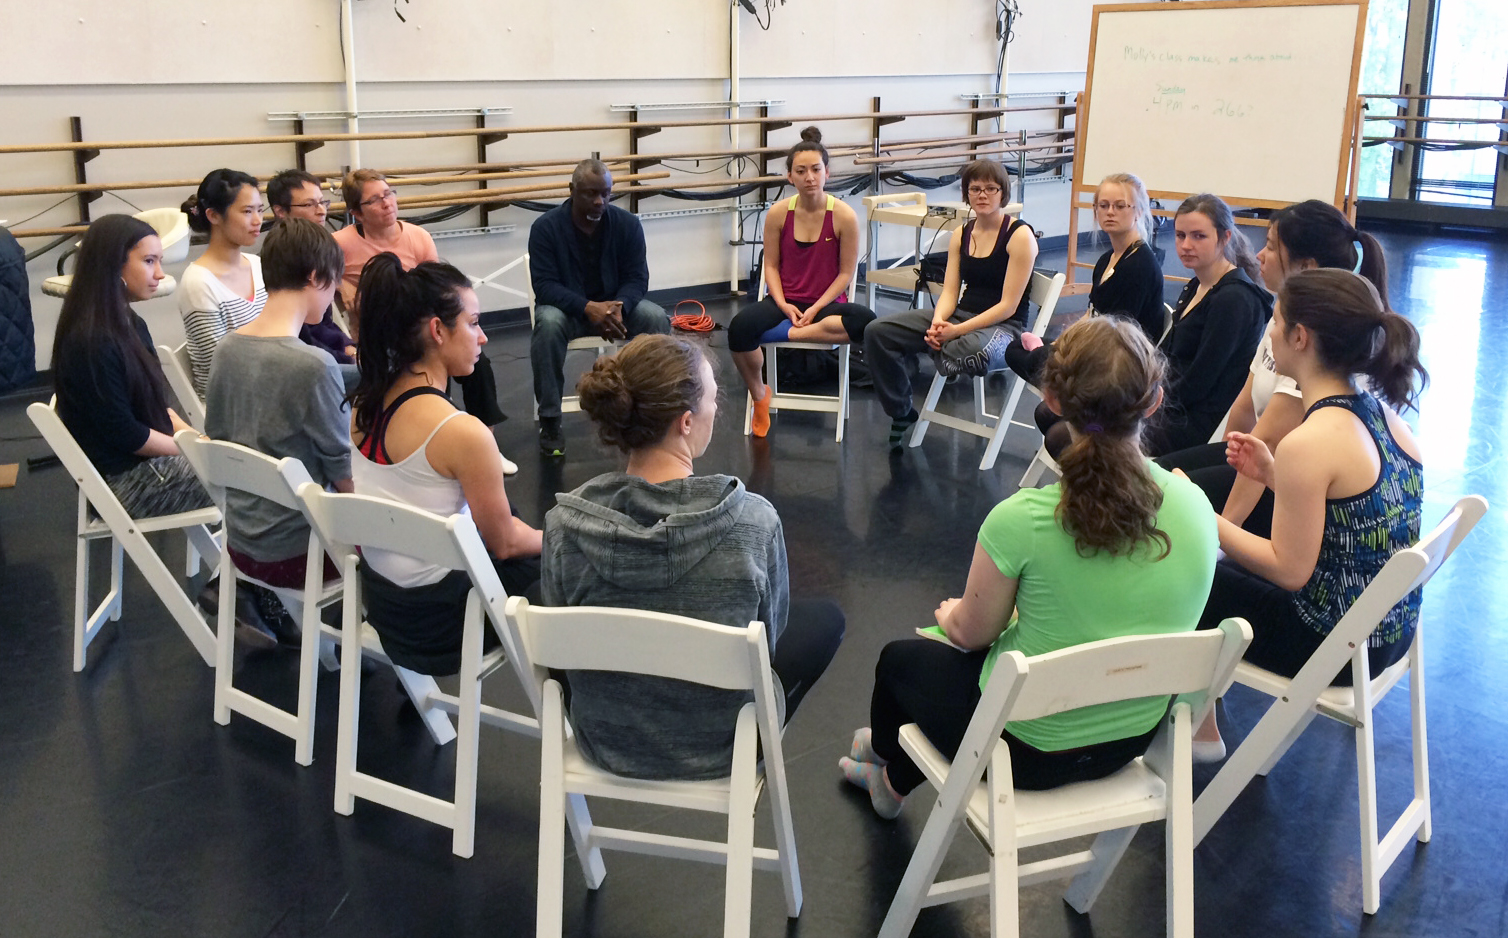 Choreographer Robert Moses begins his visit to the UW campus in April by chatting with student dancers in Professor Jennifer Salk's class, listening patiently as they discussed their lives and interest in dance.